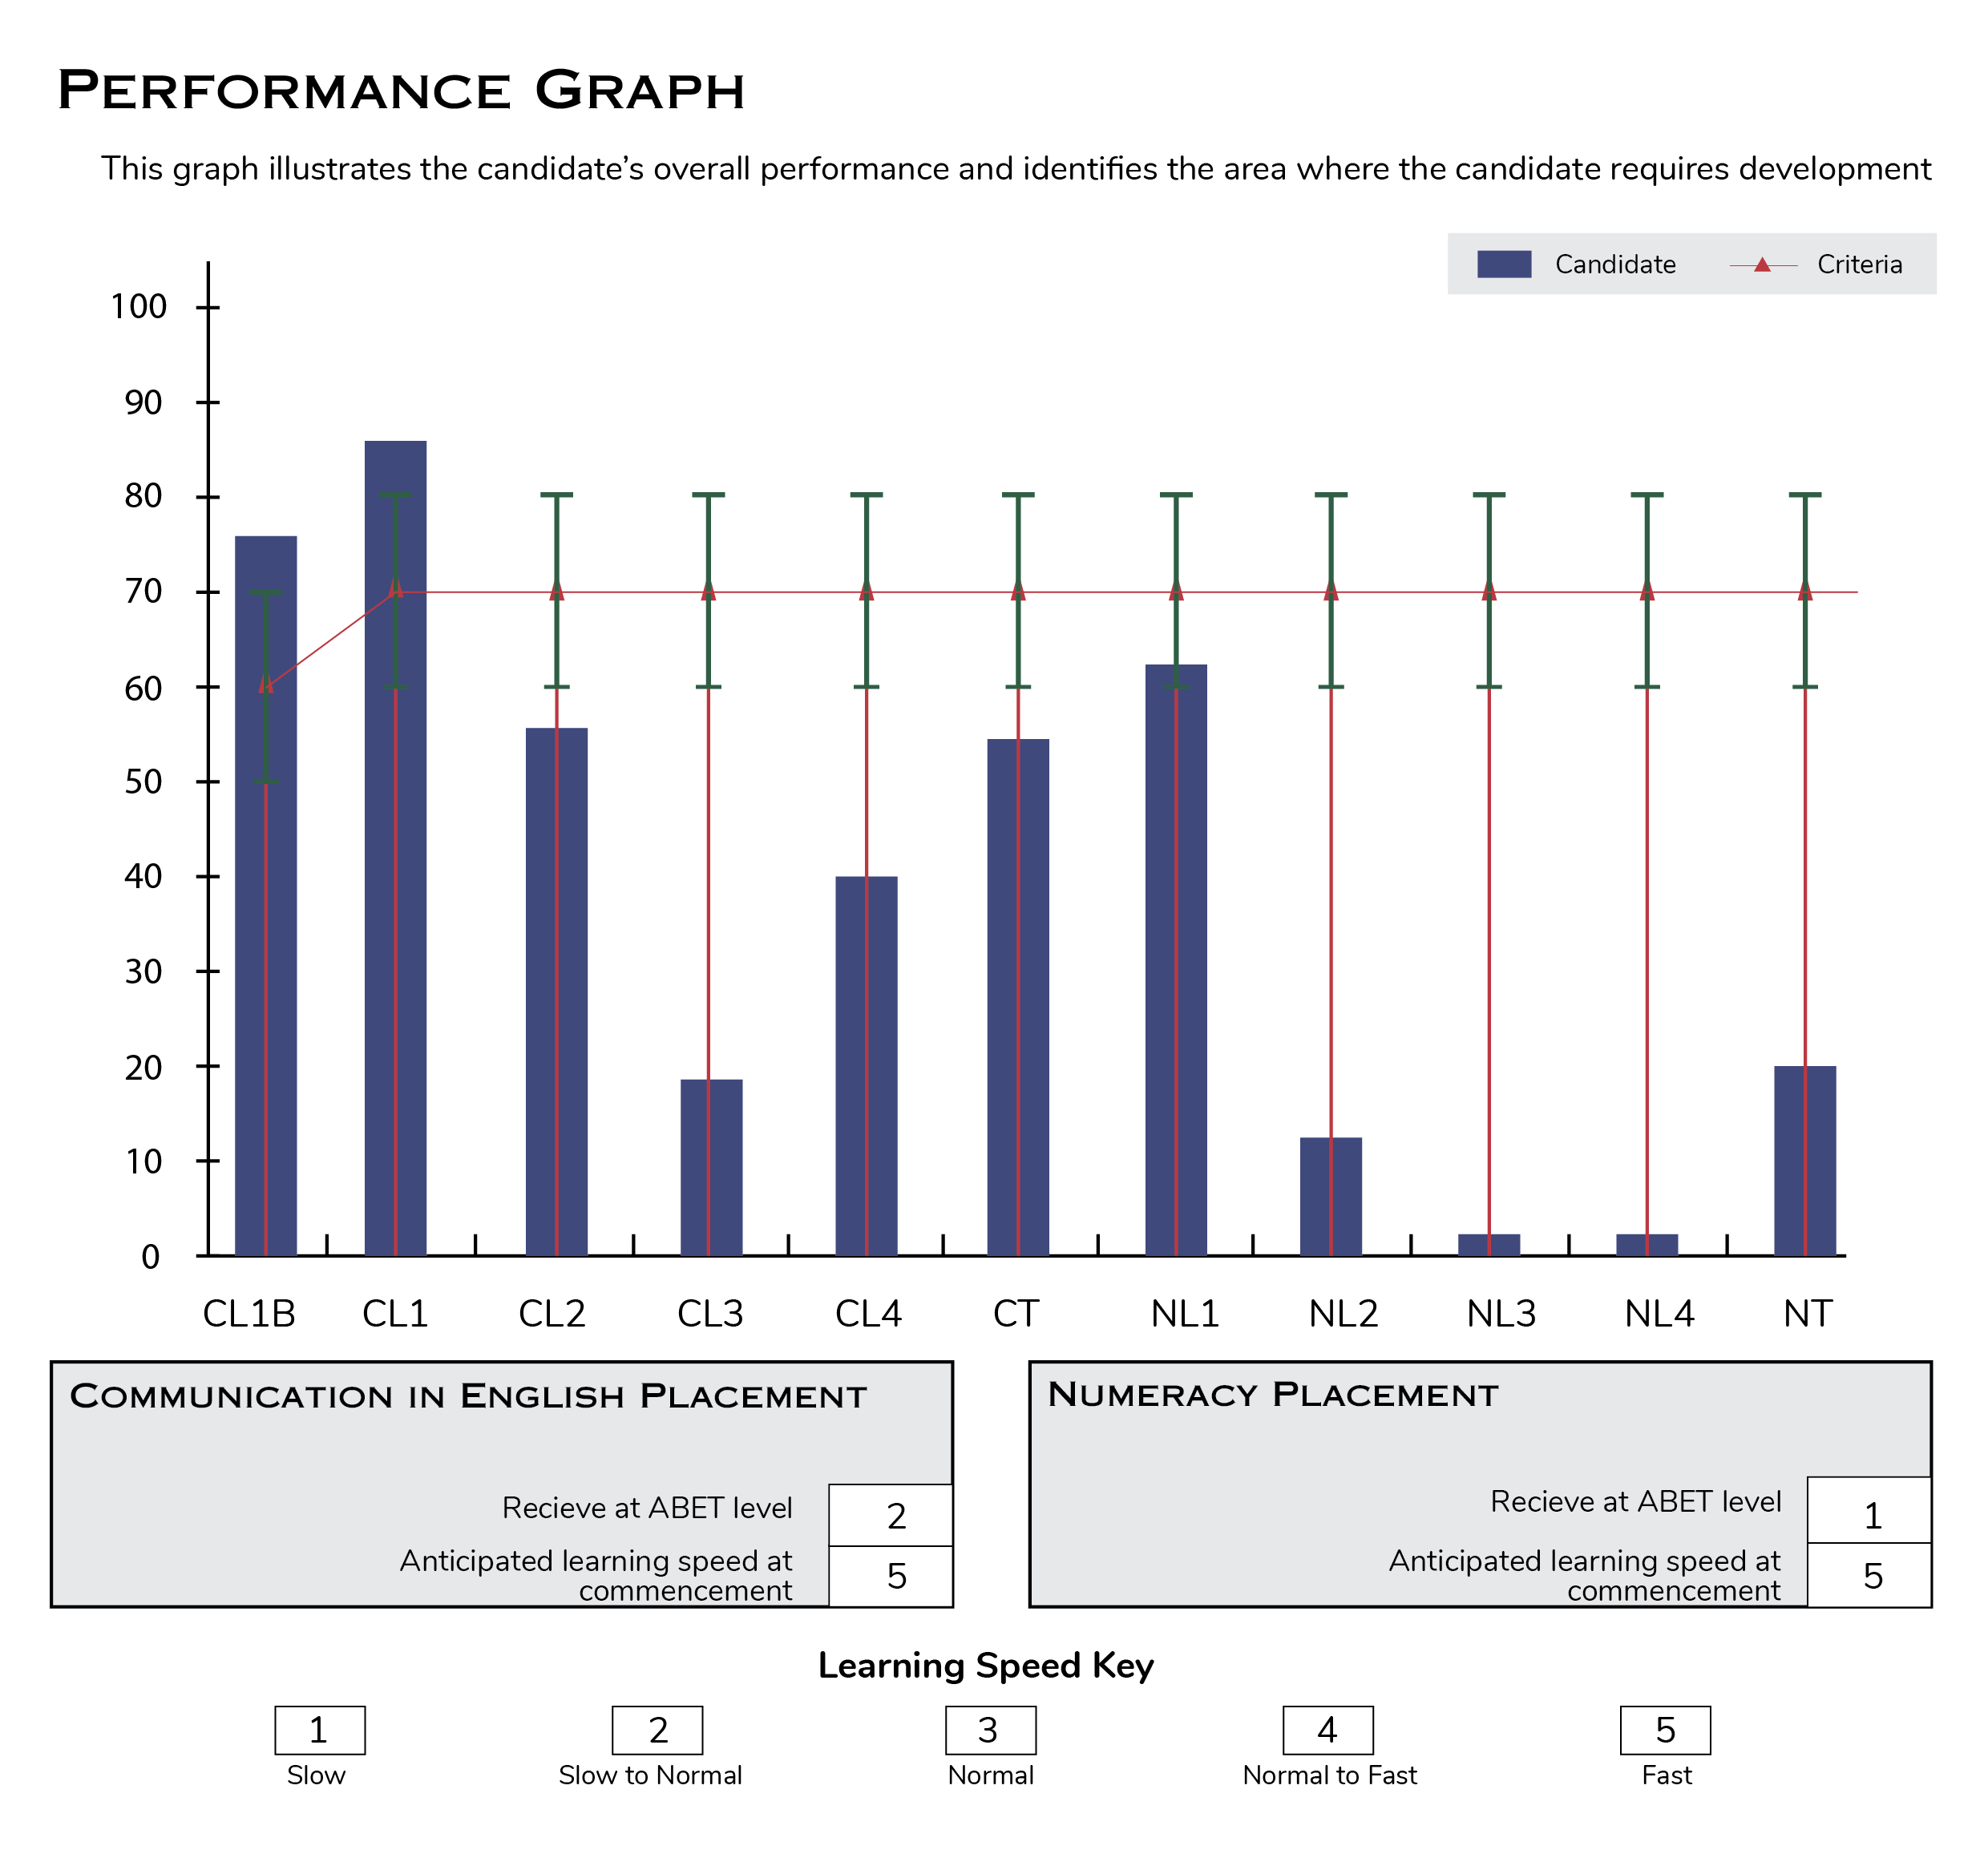 assessment performance graph 2